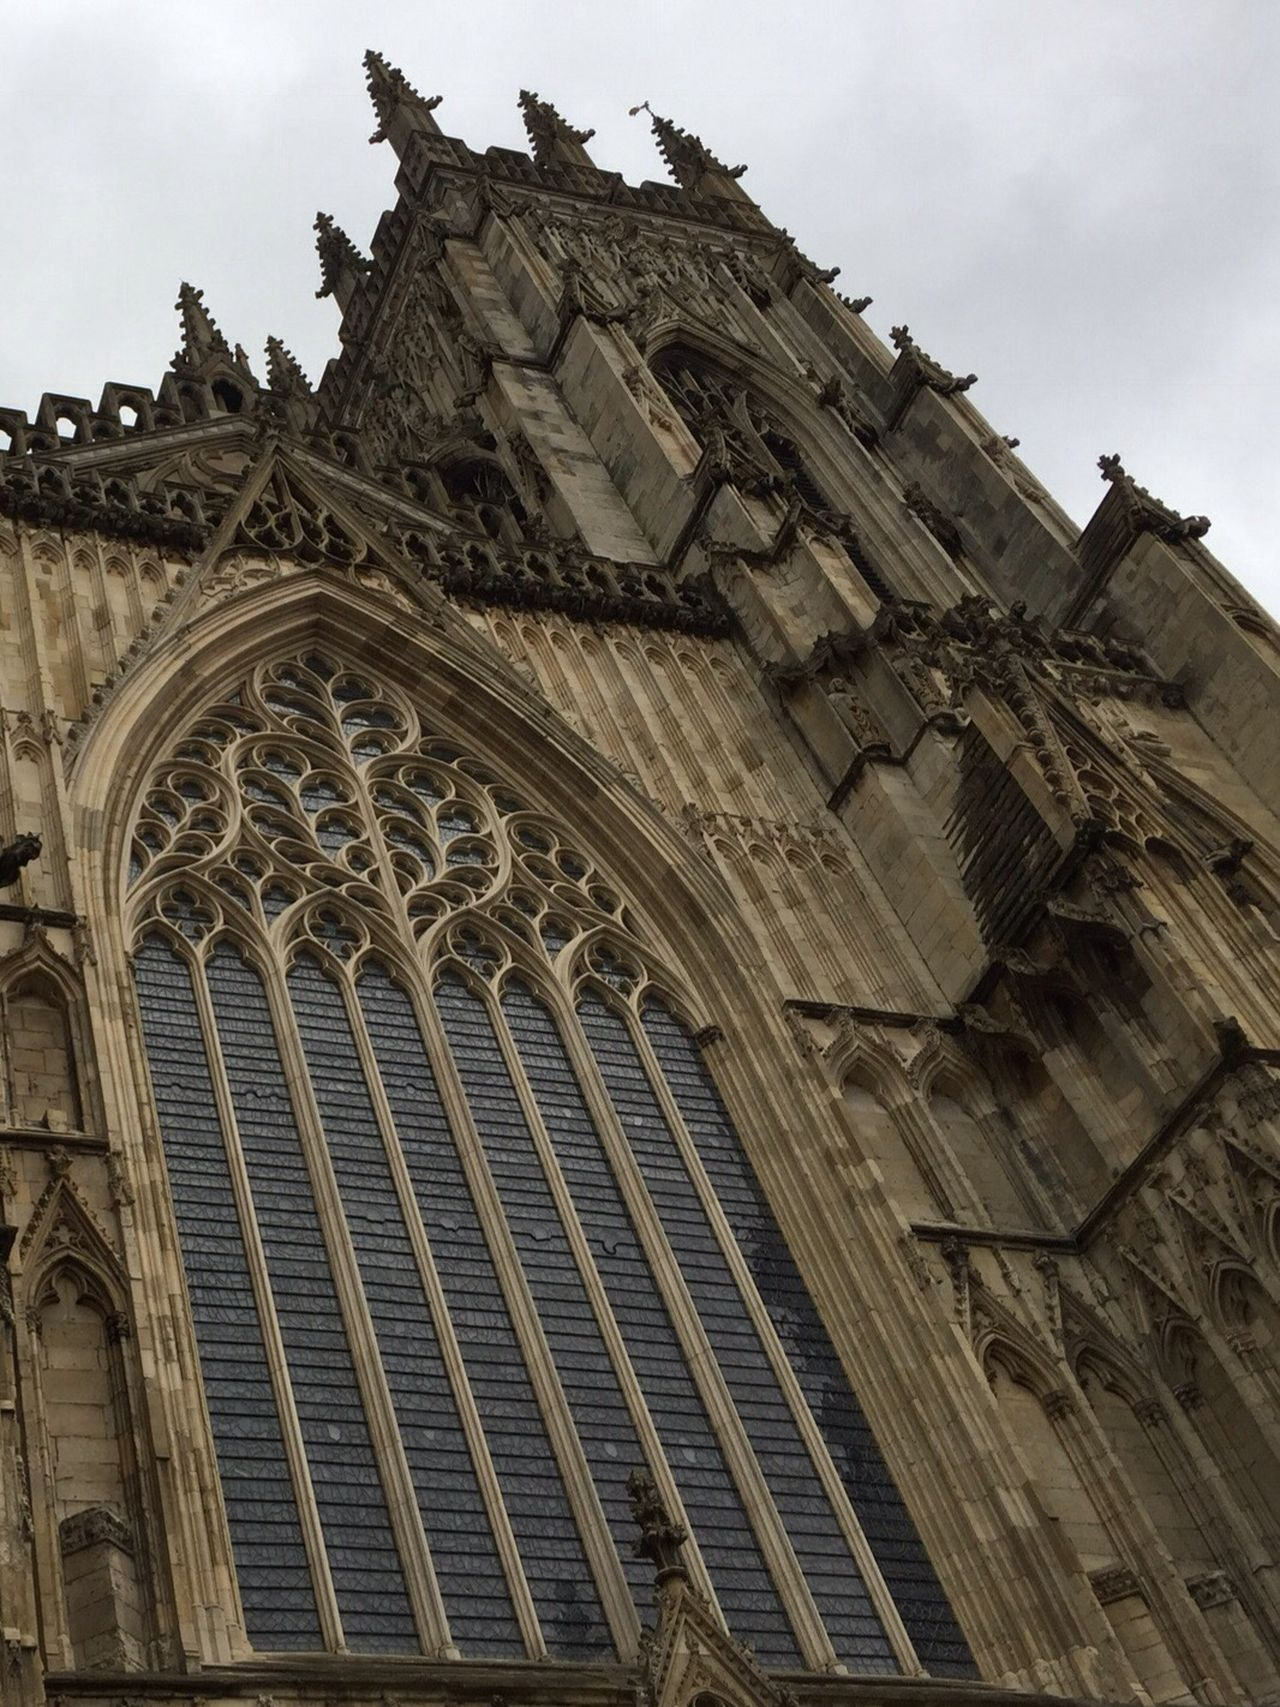 Low Angle View Architecture Building Exterior Sky Built Structure Outdoors Day No People Place Of Worship Rose Window History York Historical Building Place Of Worship